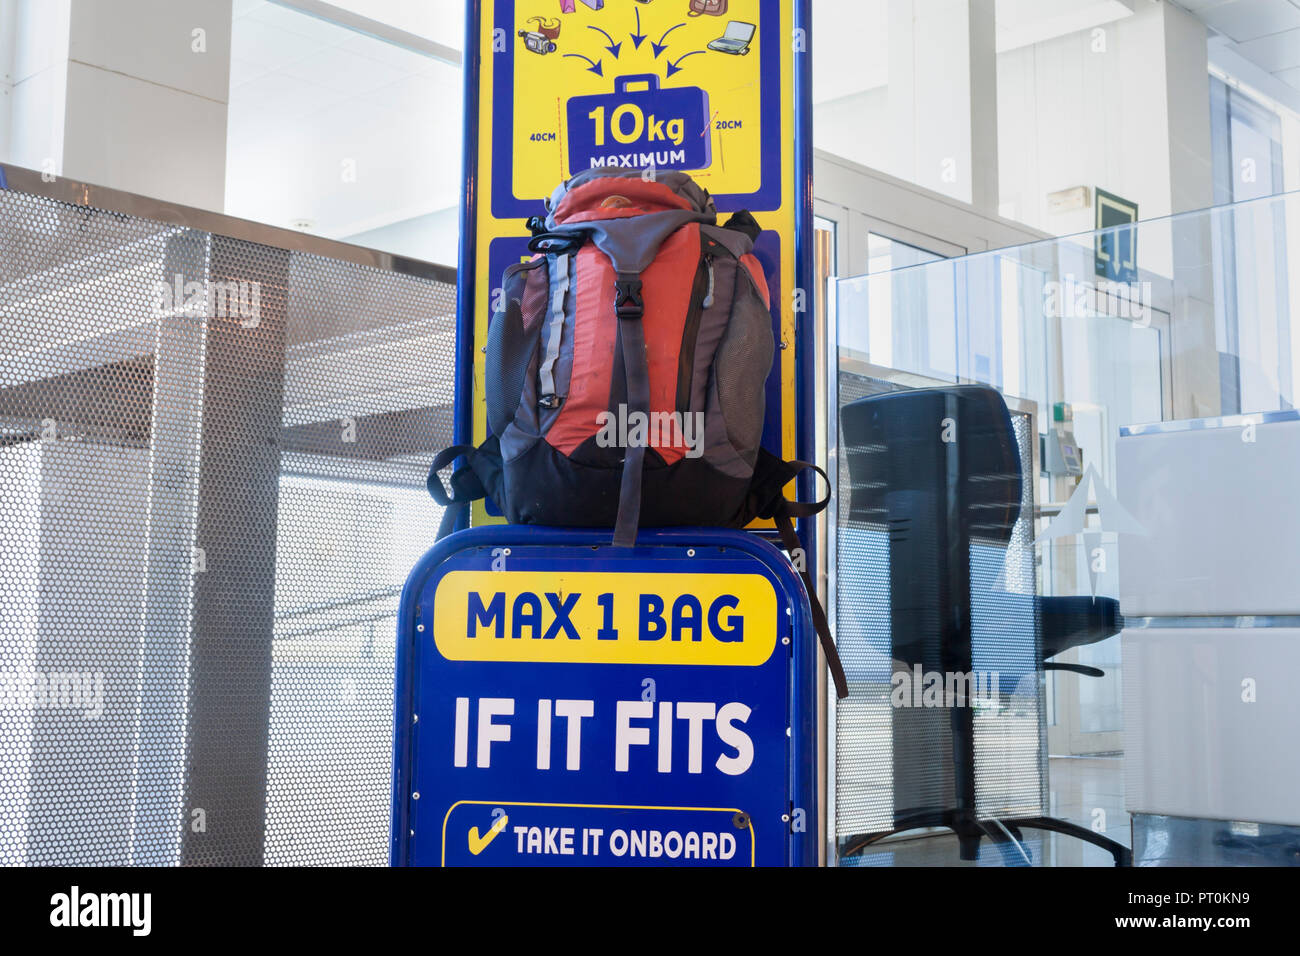 Ryanair hand luggage/baggage size checker. - Stock Image